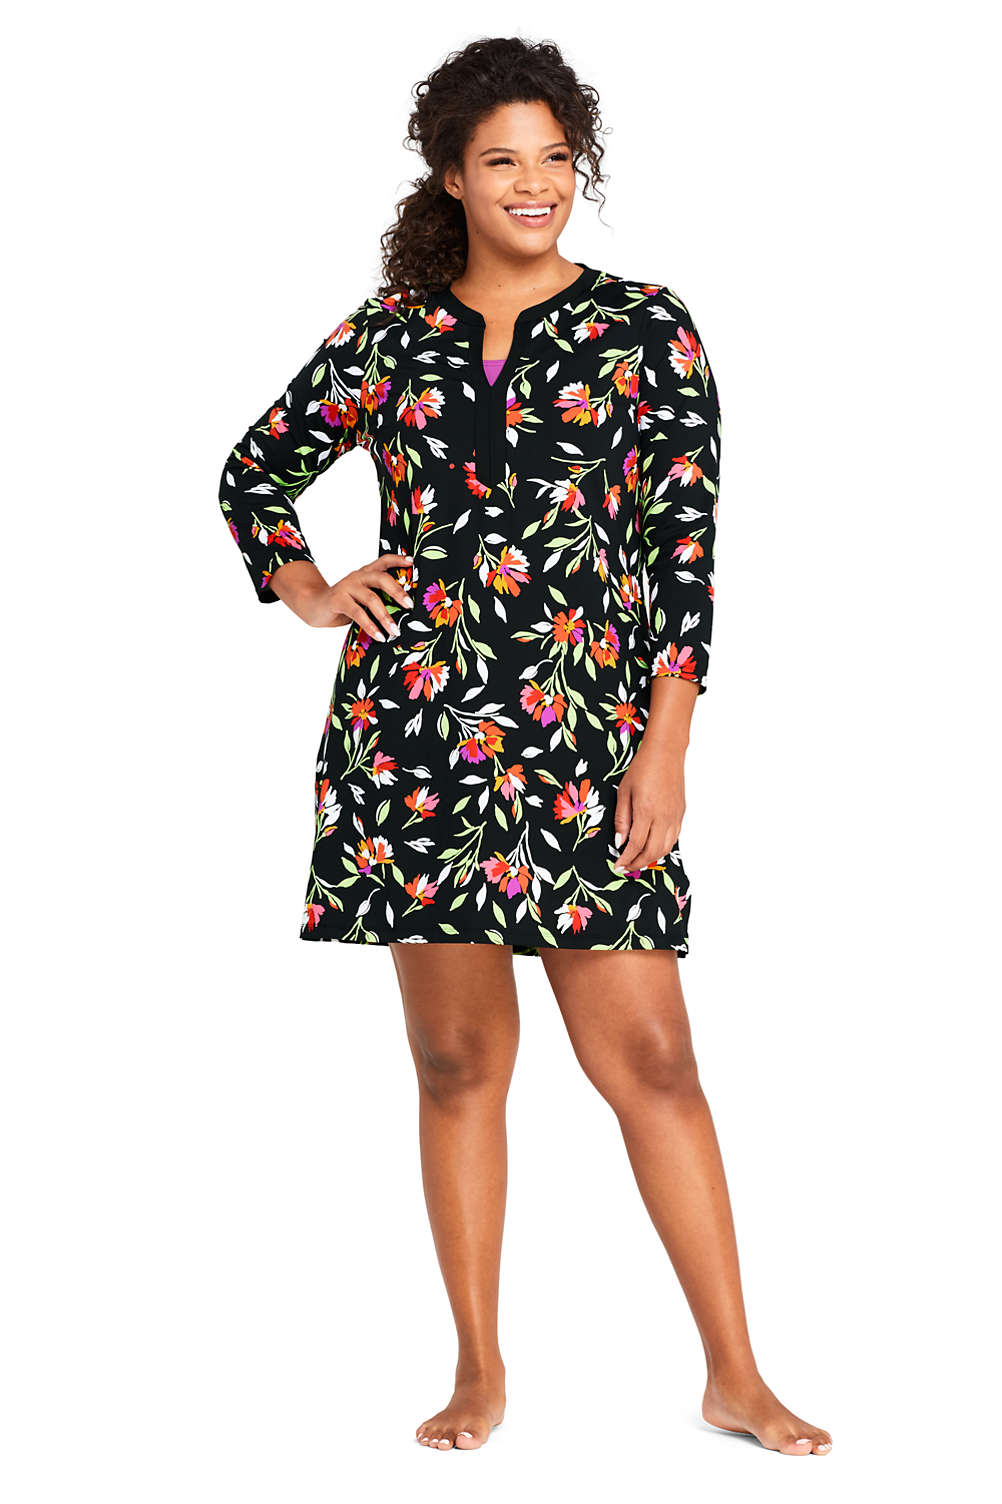 4752fc2f8b875 Women s Plus Size Swim Cover-up Tunic Dress with UV Protection Print. Item   505834AH6. View Fullscreen